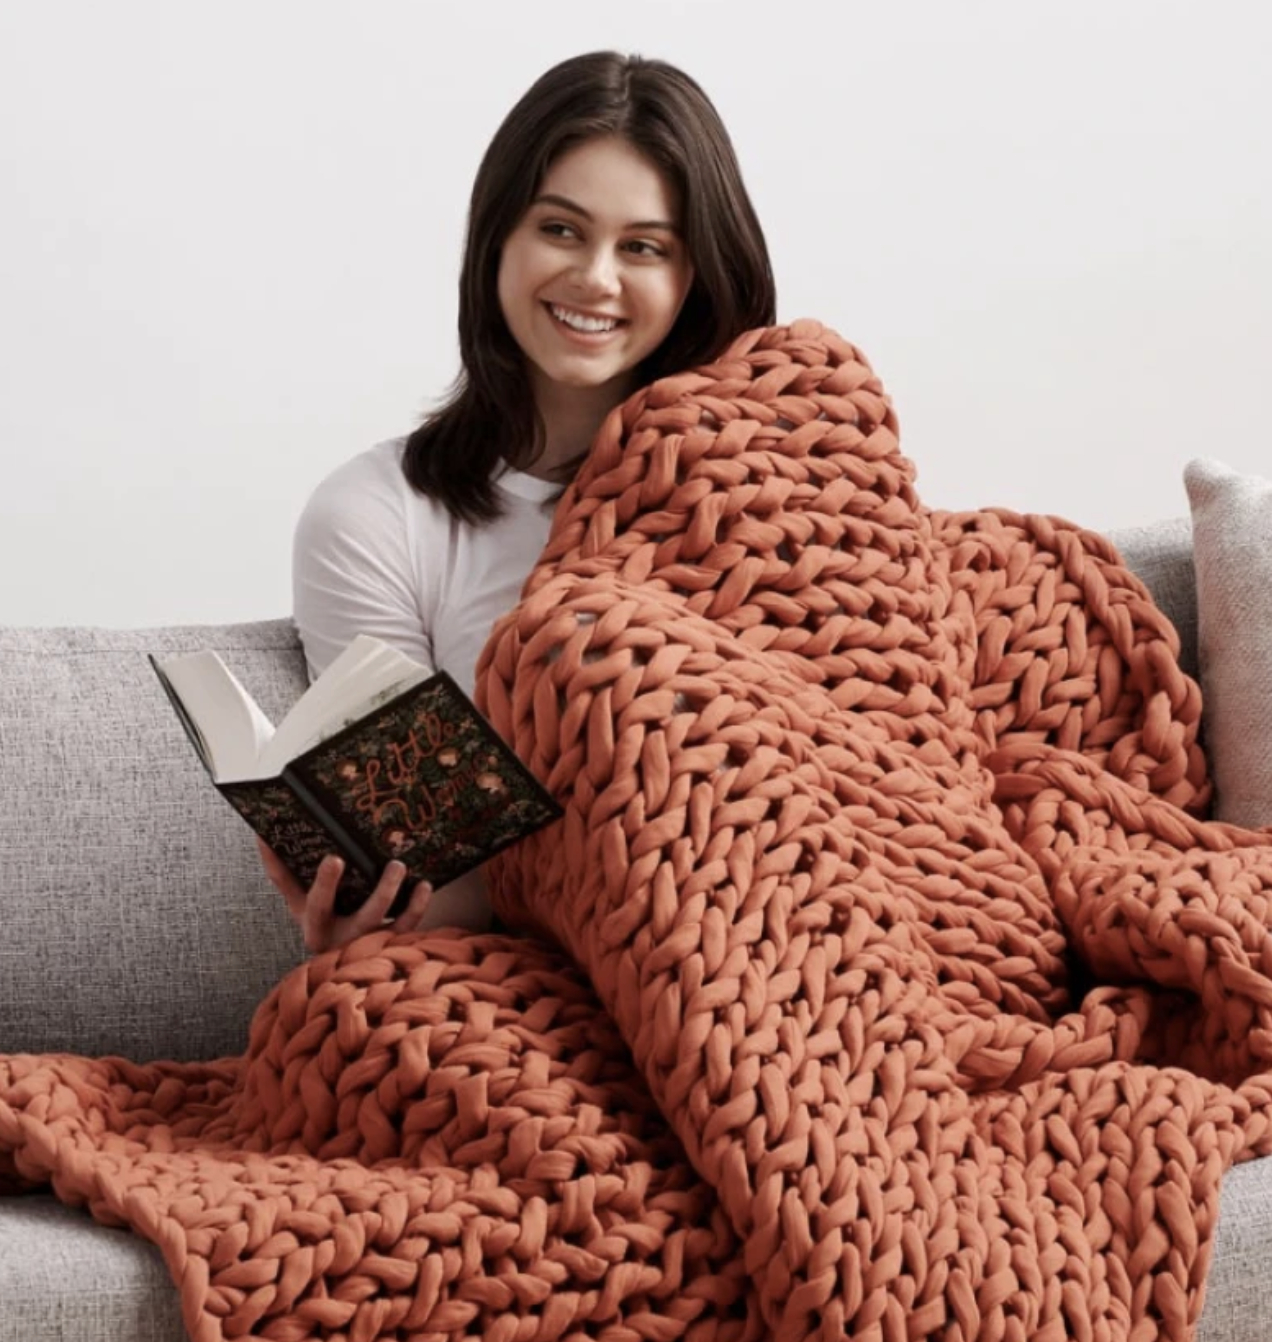 Model snuggled under the blanket with a book on the couch